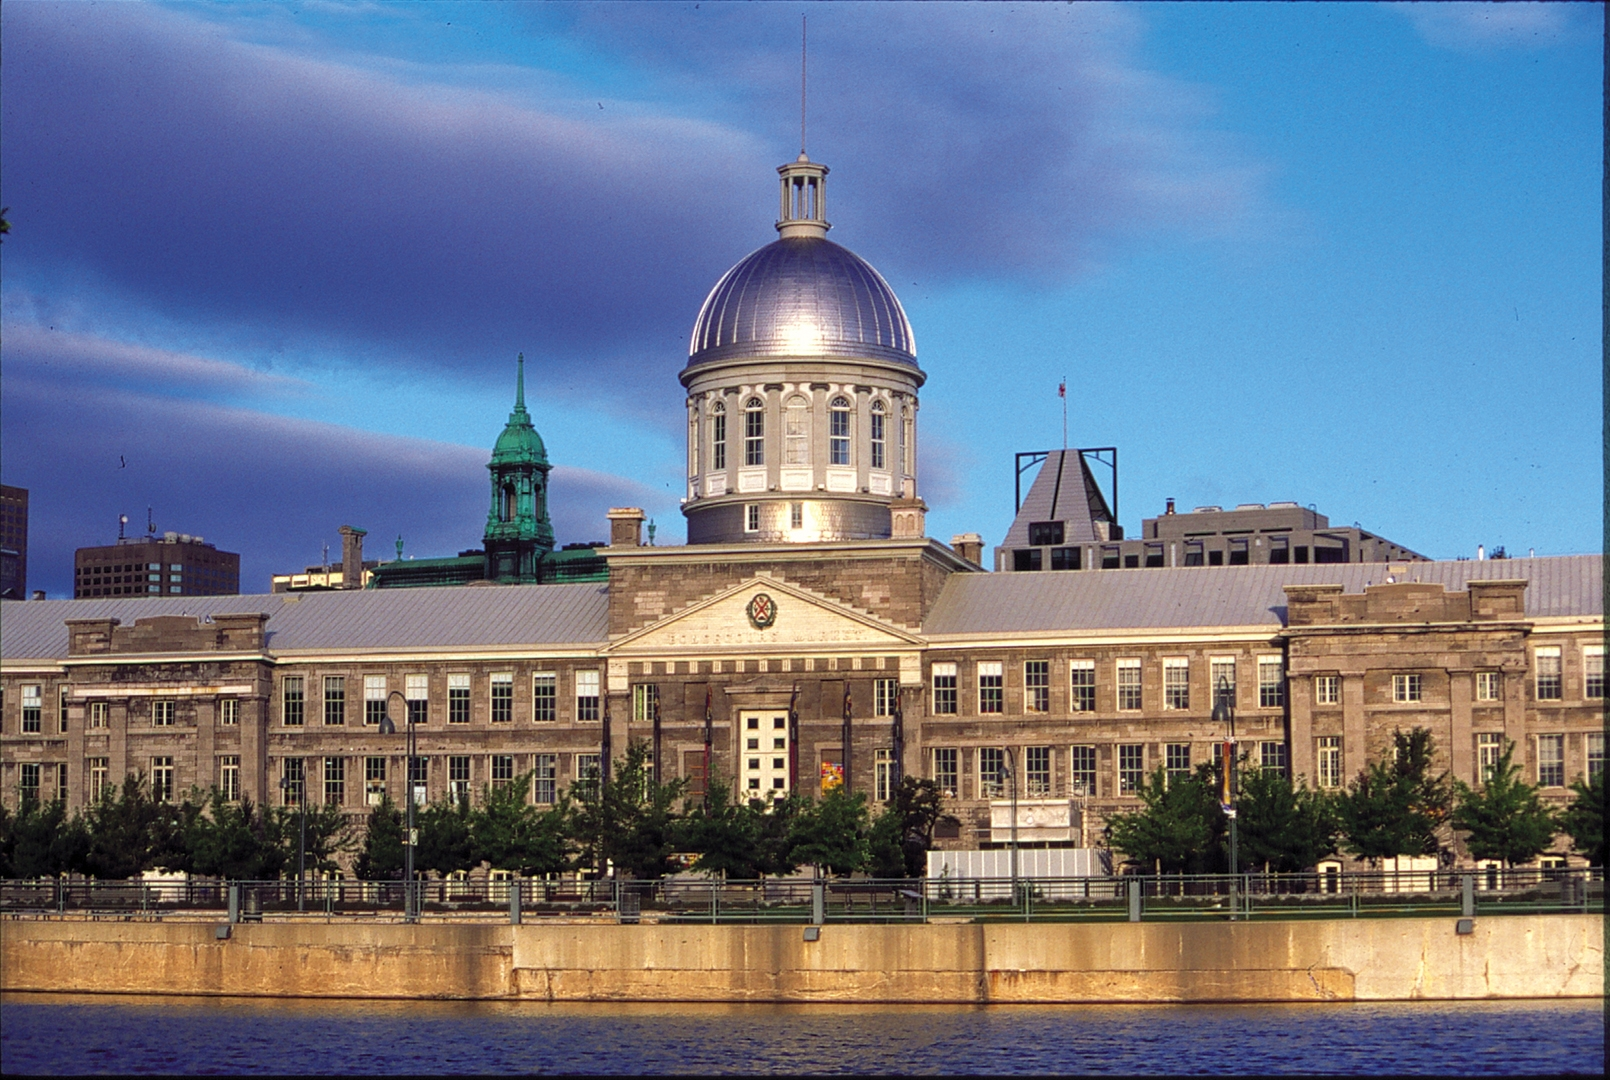 hostorical place in montreal, things to do during the day